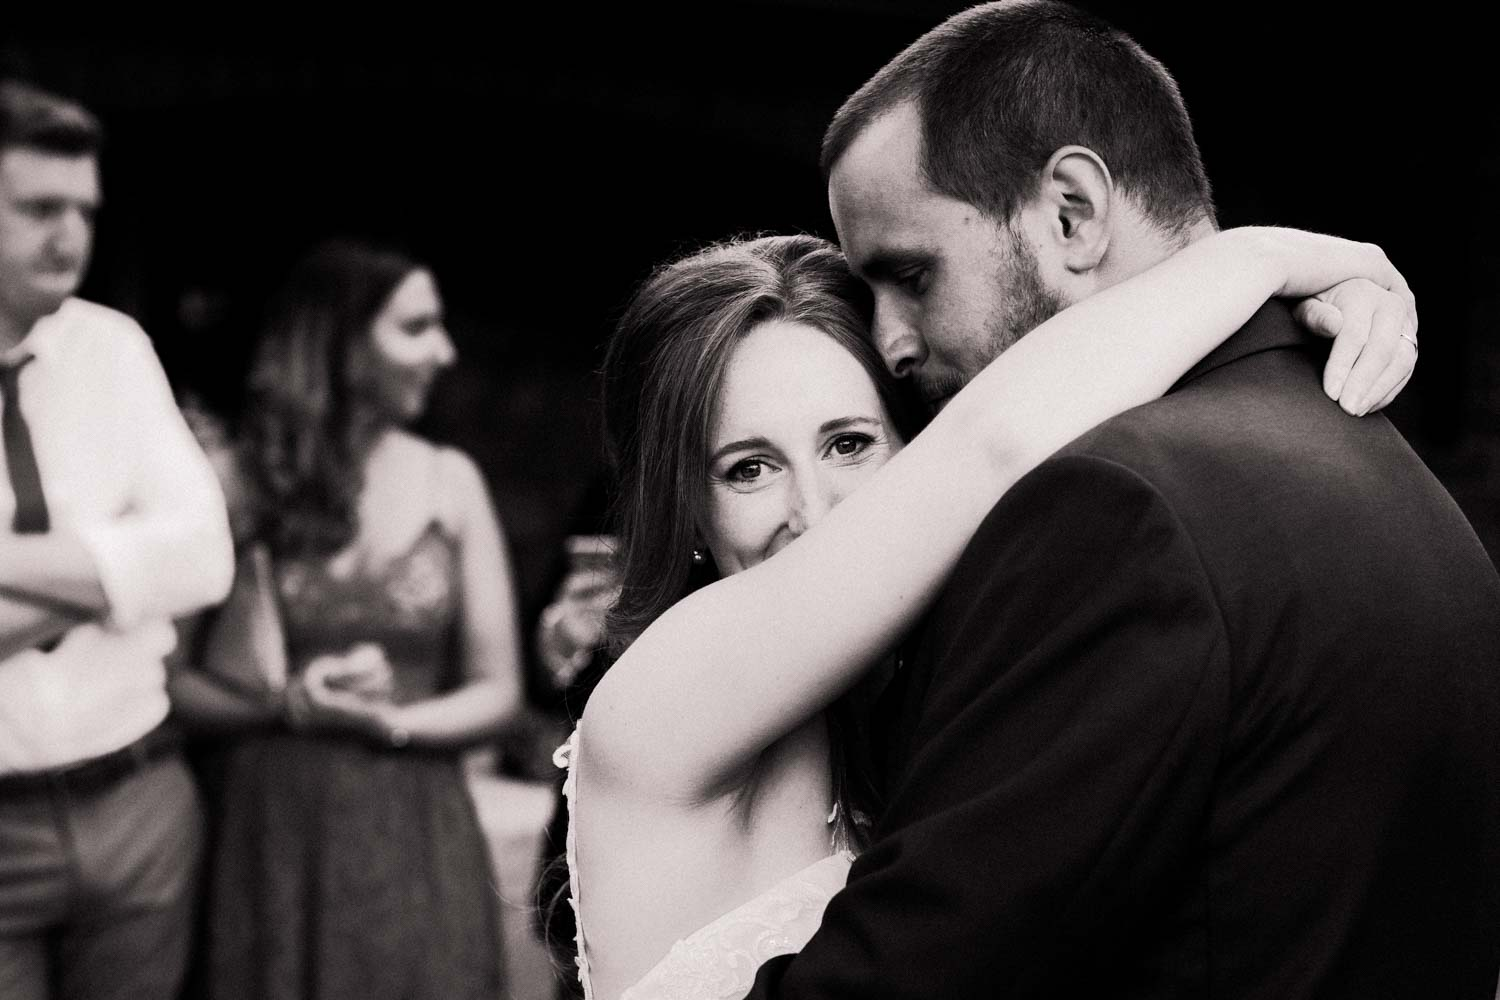 Newlywed couple embraced in first dance, wife turns and looks at camera.